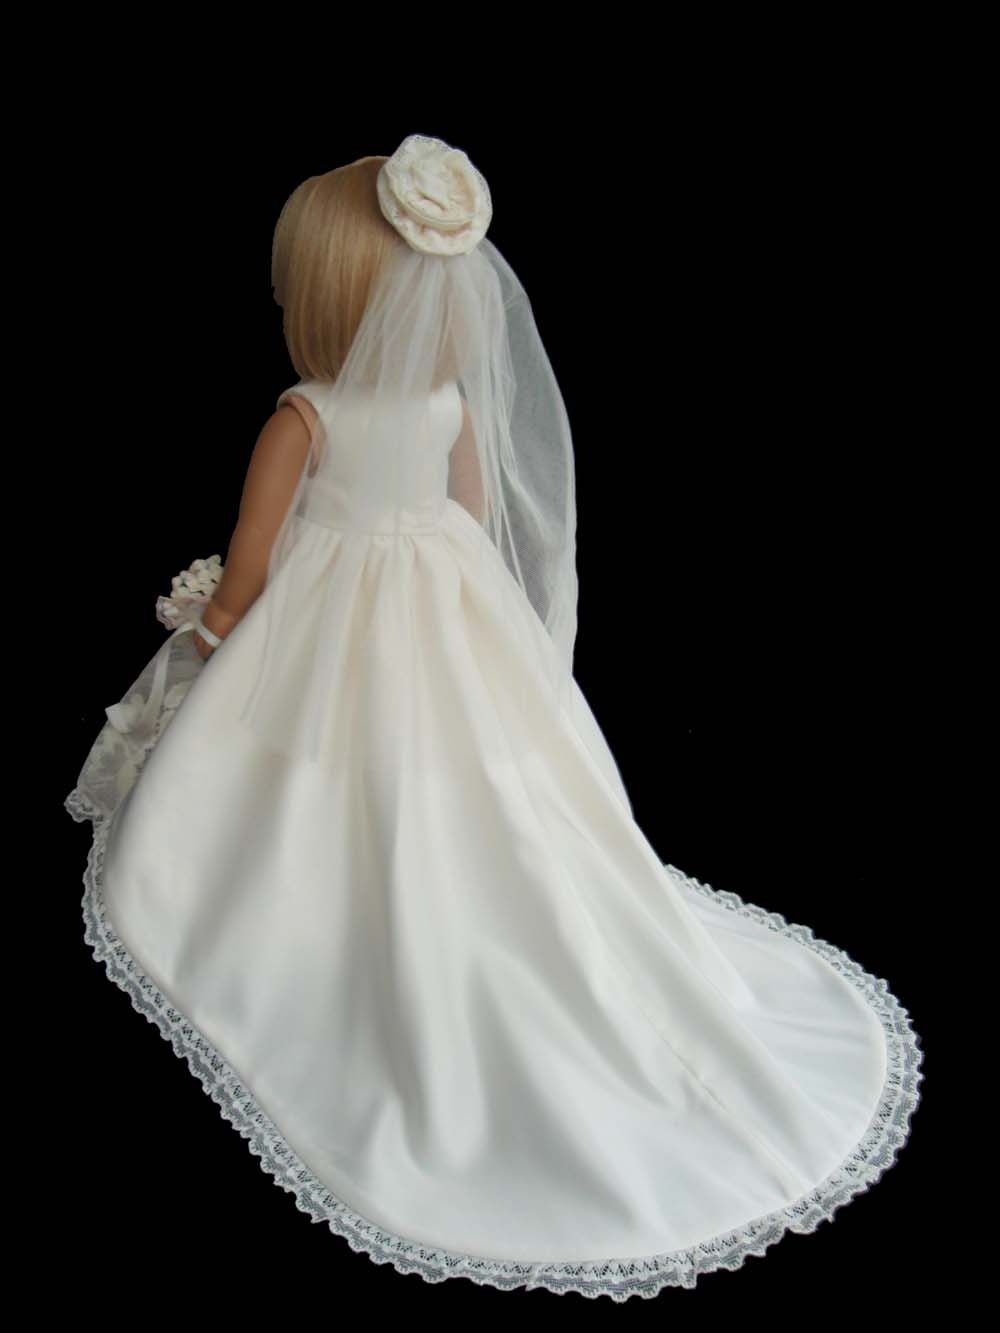 American girl doll clothes wedding gown dress ivory satin and for American girl wedding dress